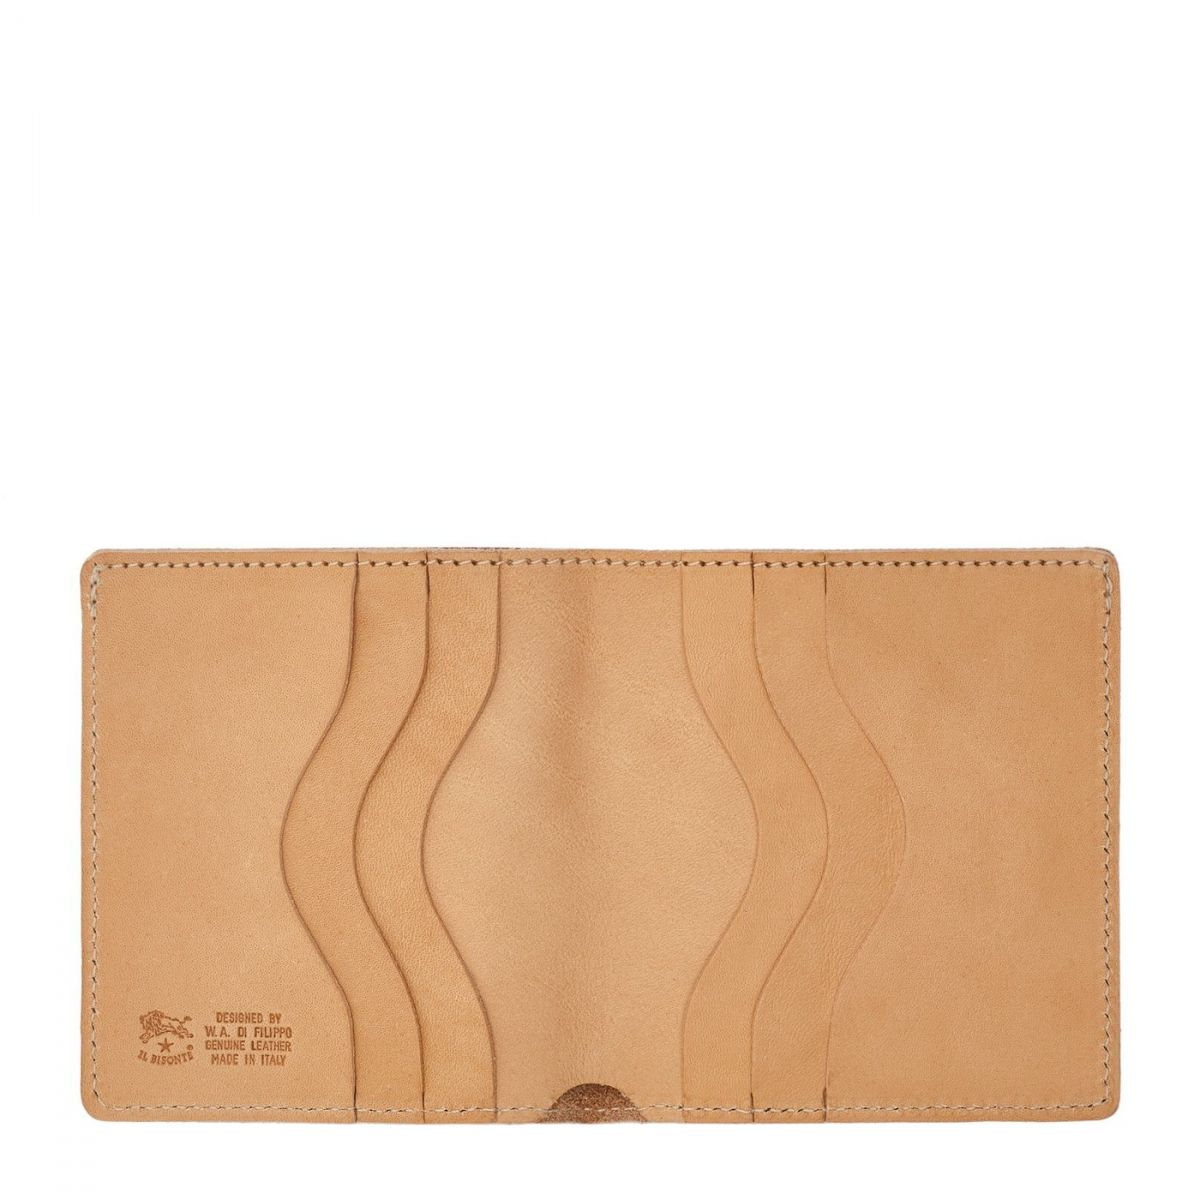 Men's Bi-Fold Wallet  in Cowhide Double Leather SBW004 color Natural | Details